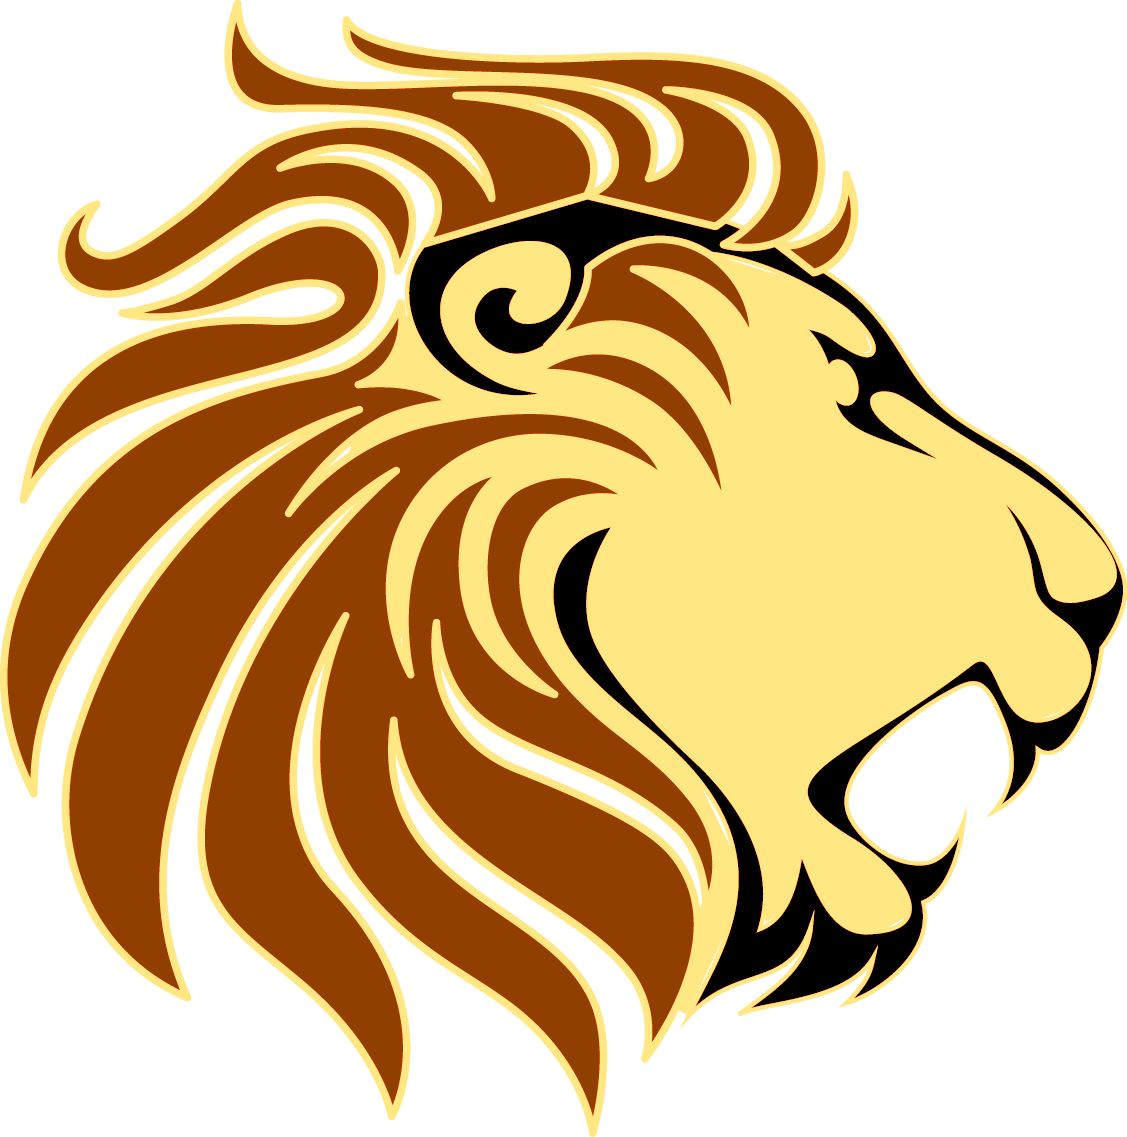 1127x1137 Lions Are Used To Represent Pride, Strength And Of Course The Top